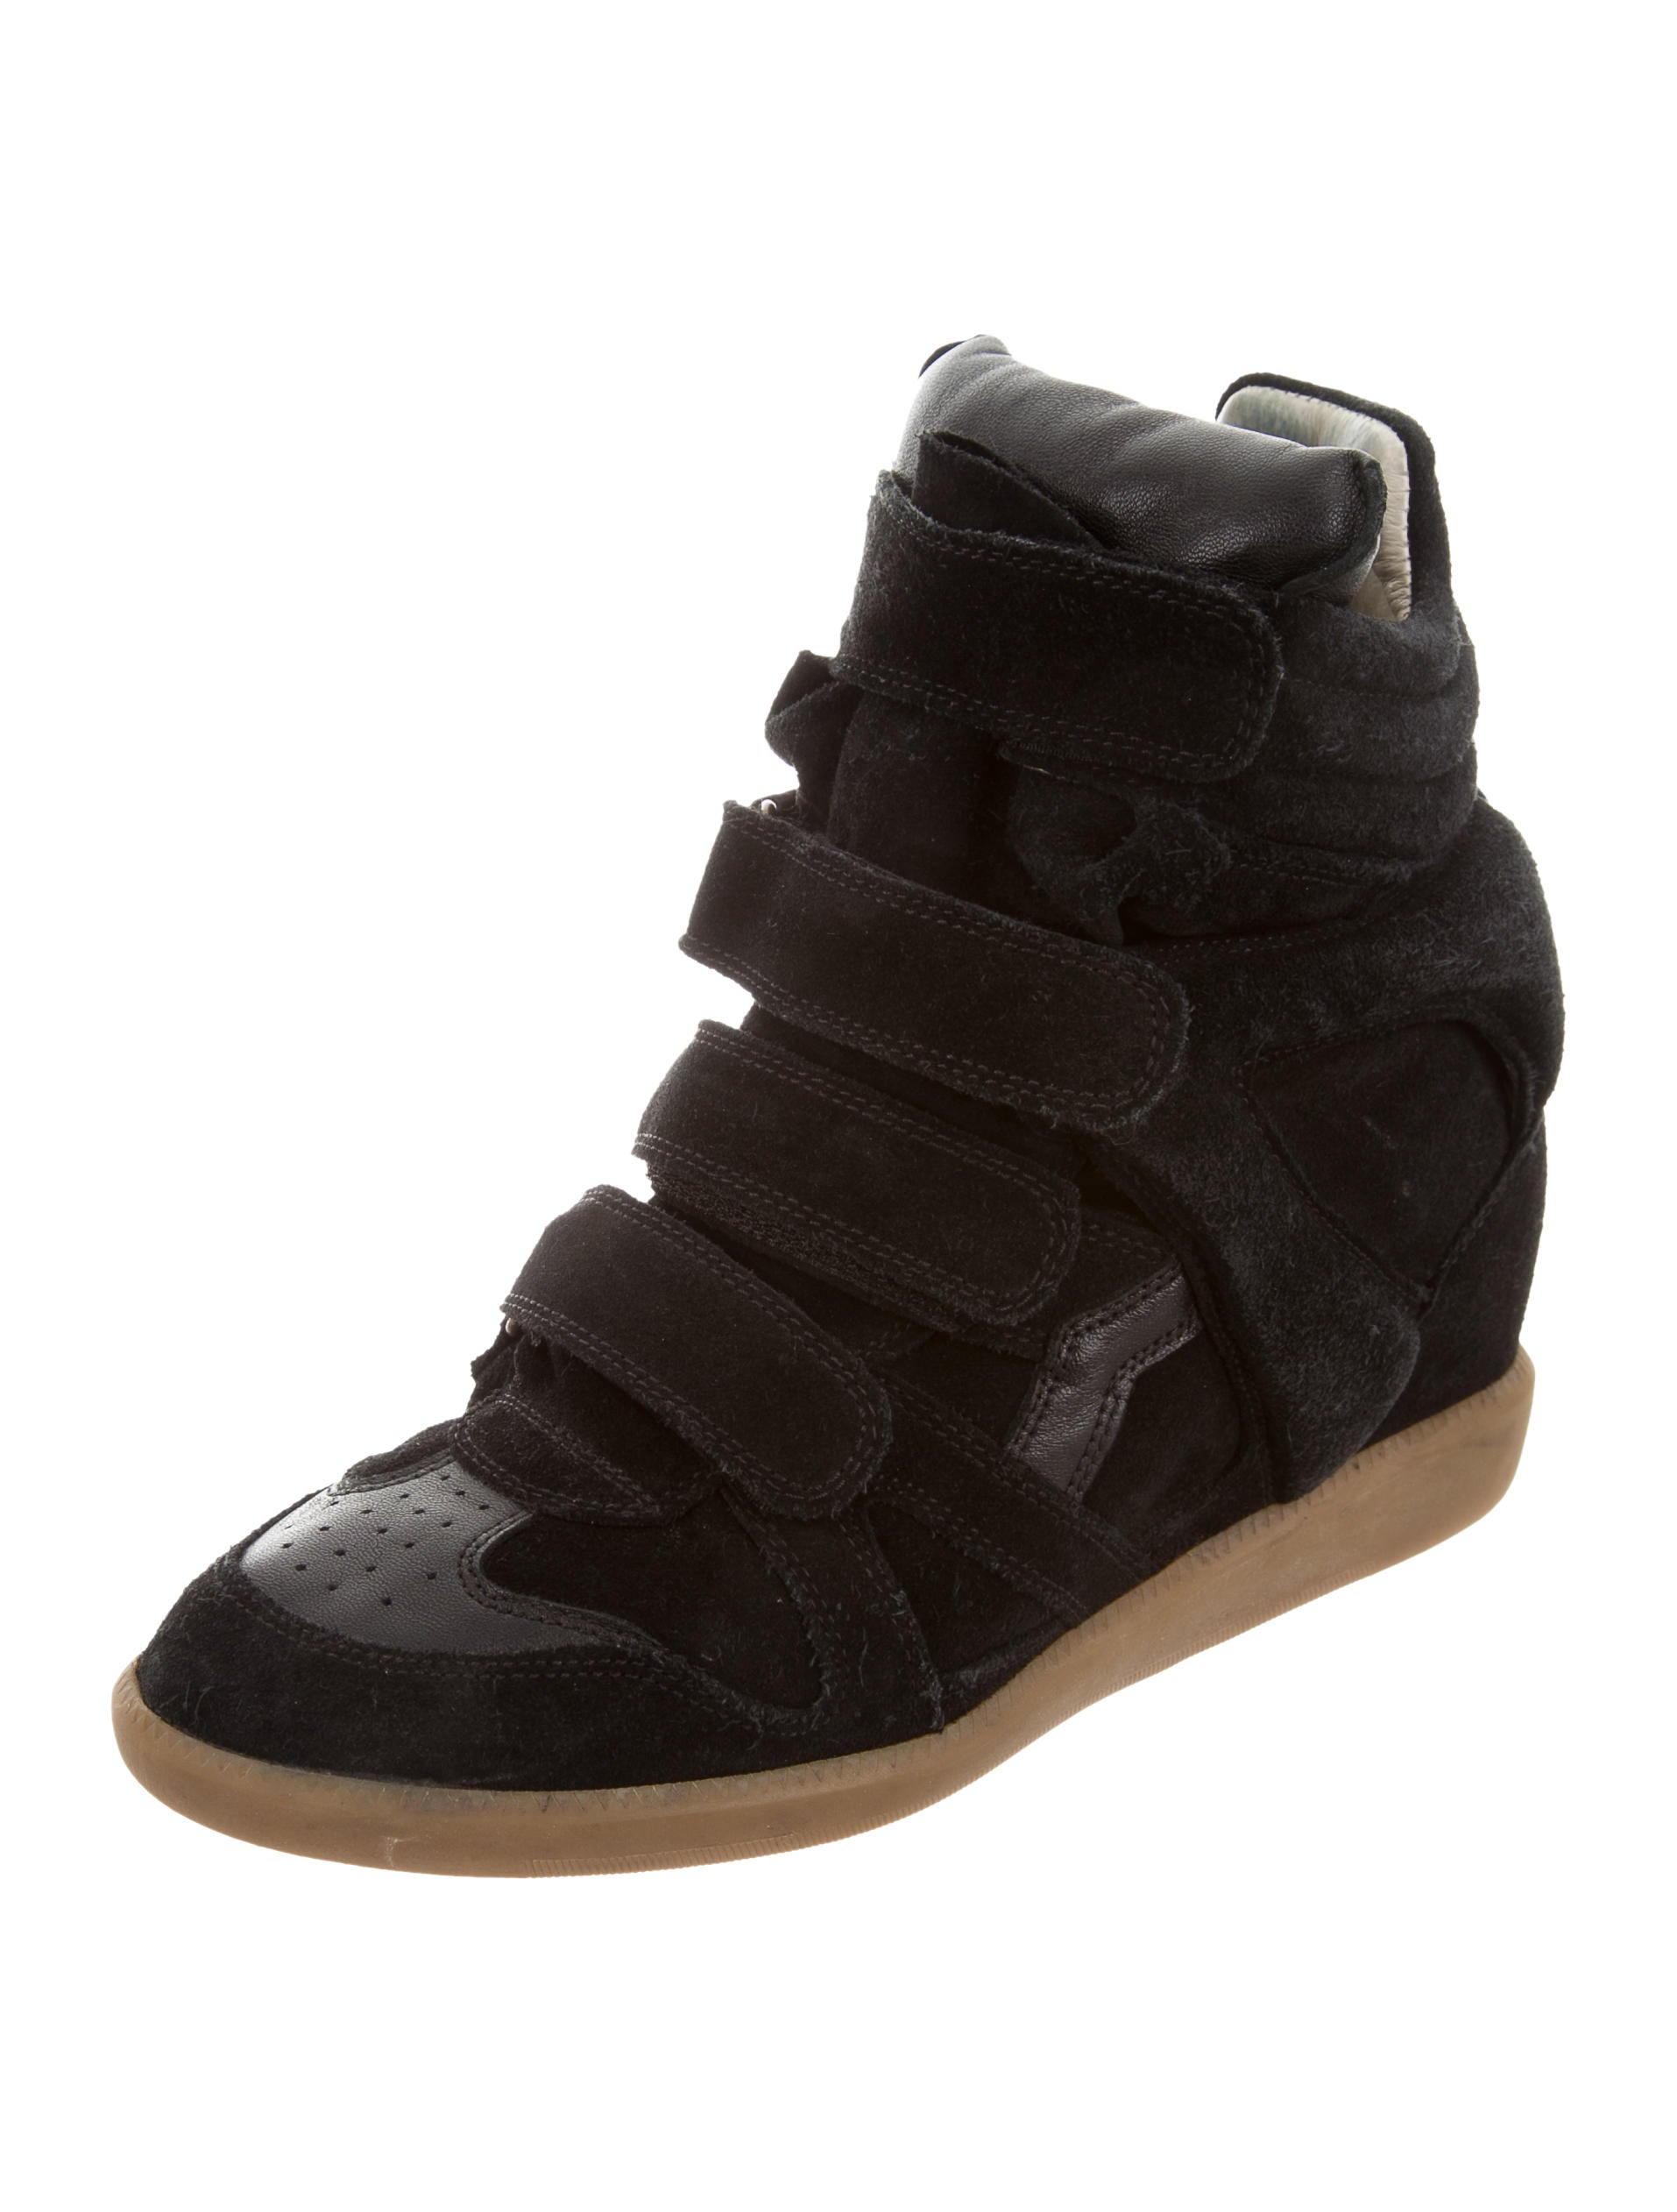 isabel marant beckett wedge sneakers shoes isa47500 the realreal. Black Bedroom Furniture Sets. Home Design Ideas